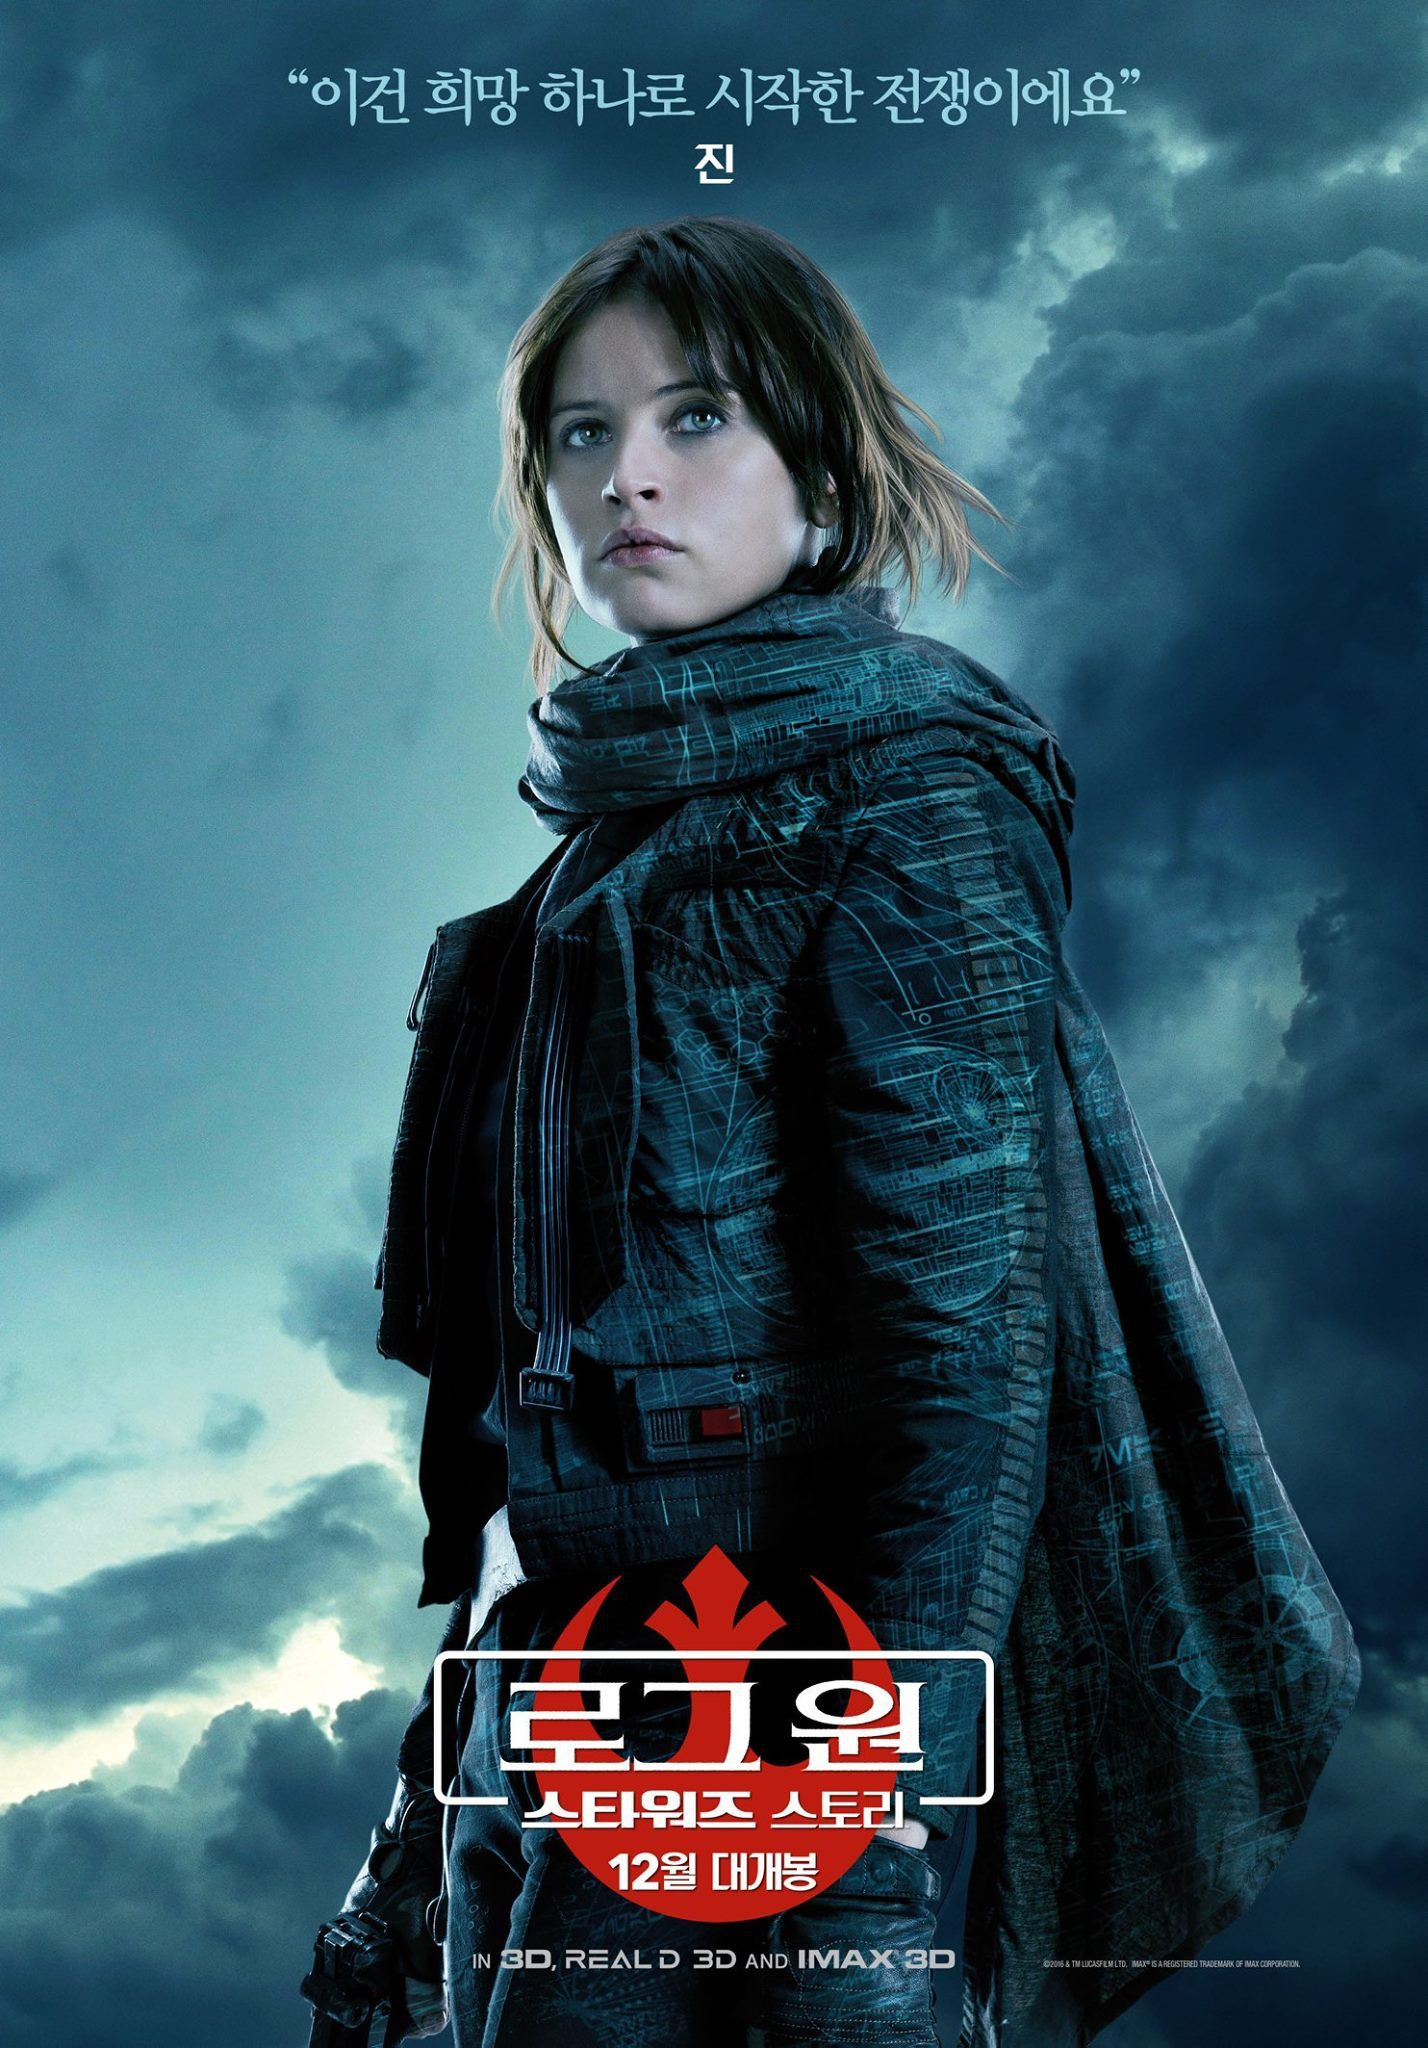 star wars poster star wars rogue one